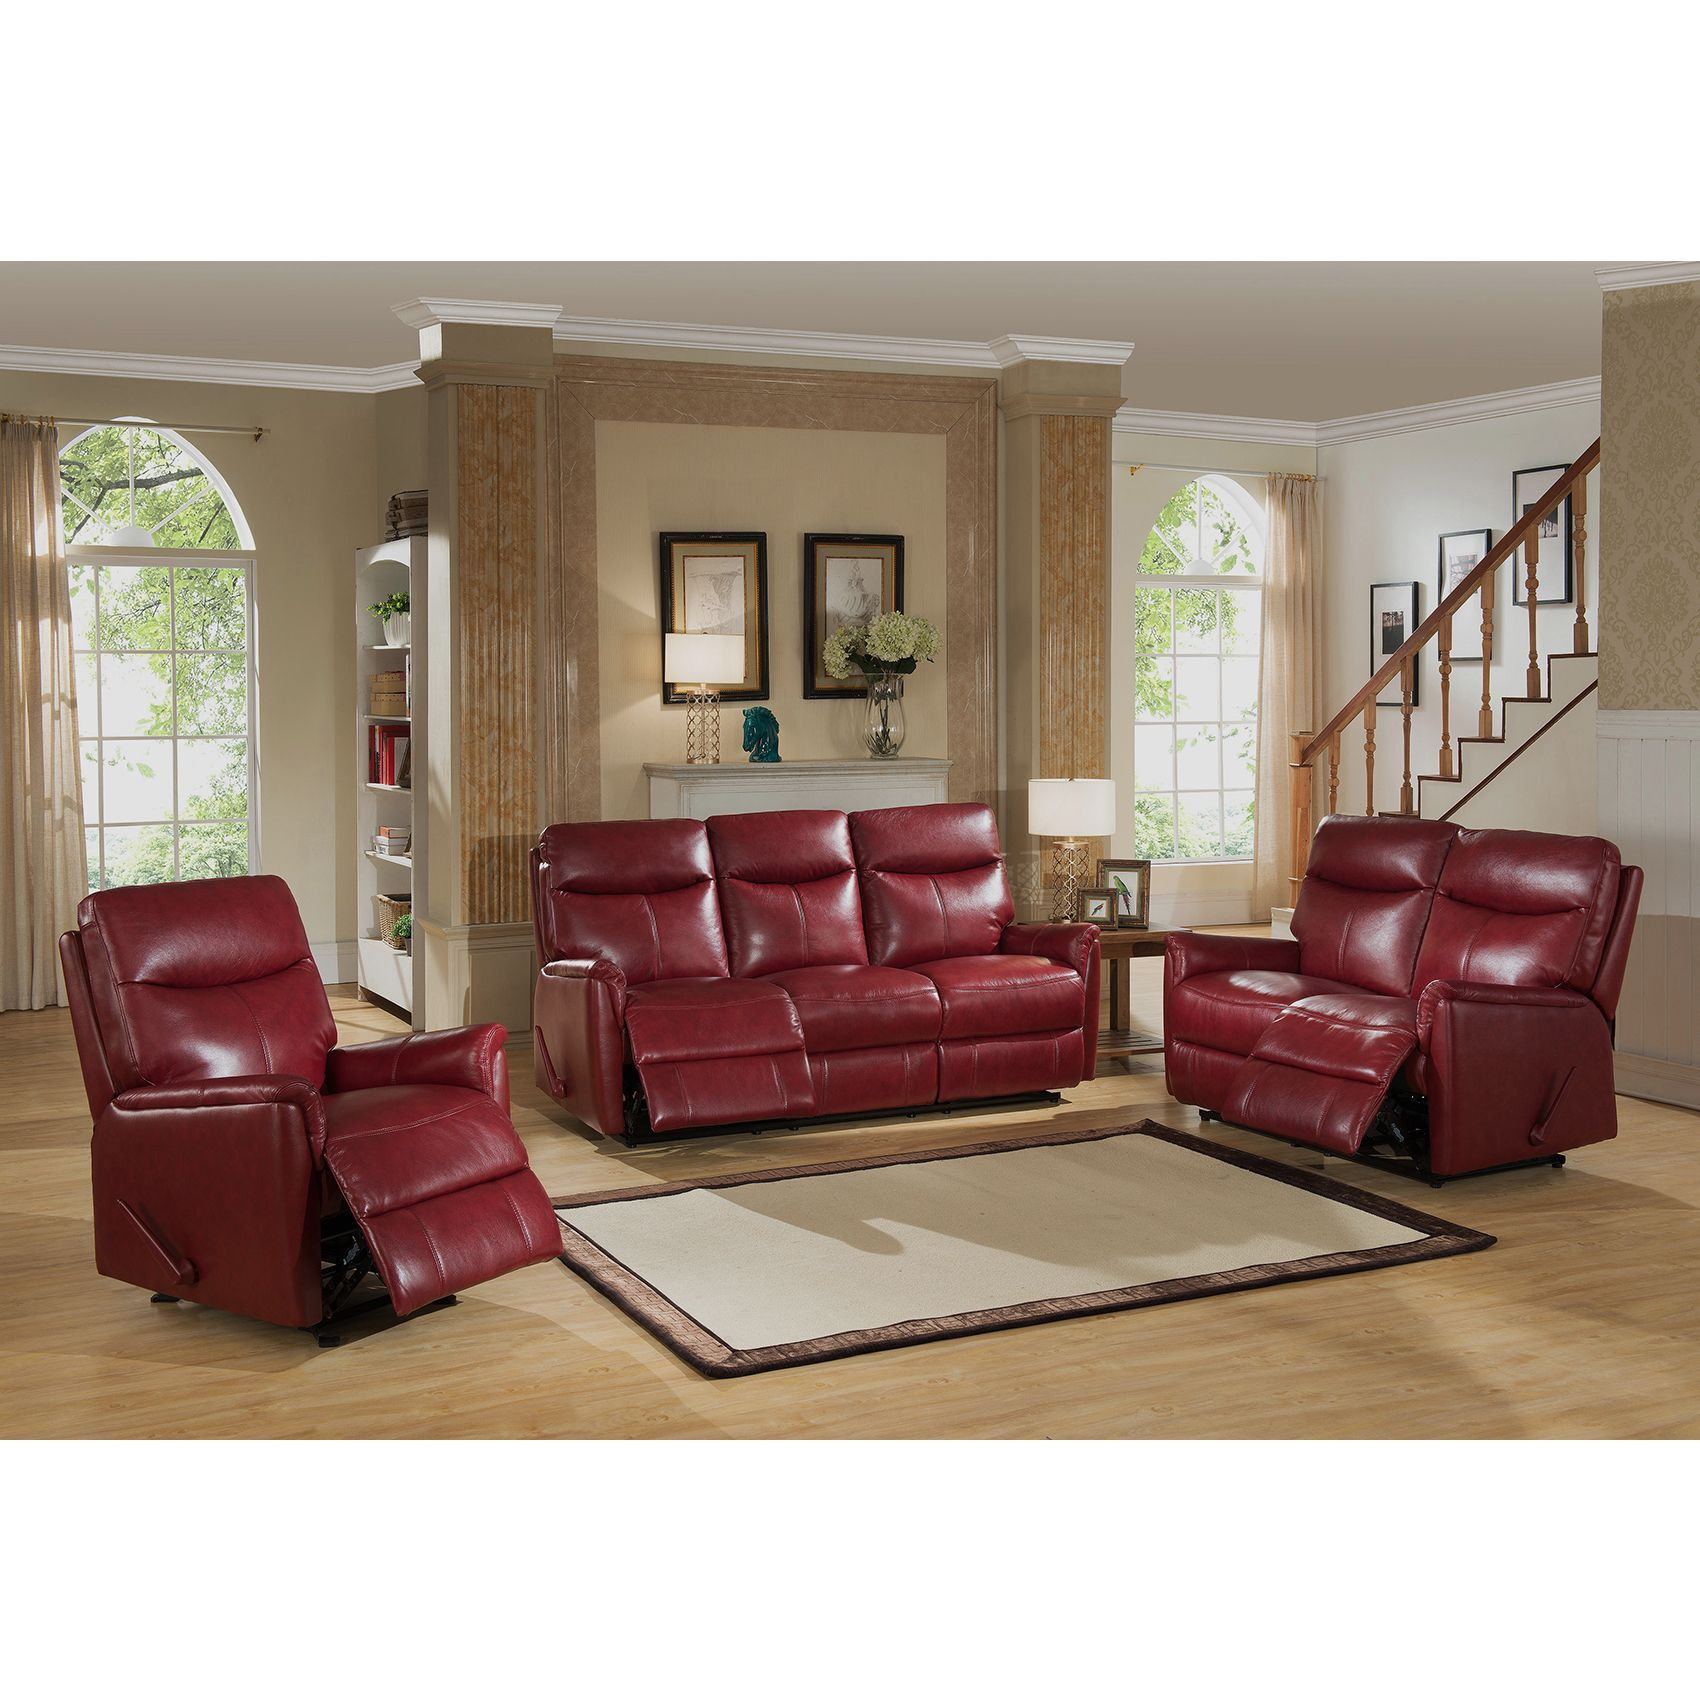 couch sofa dp com roundhill microfiber loveseat pillow sets set kitchen and furniture back amazon chocolate aruba dining